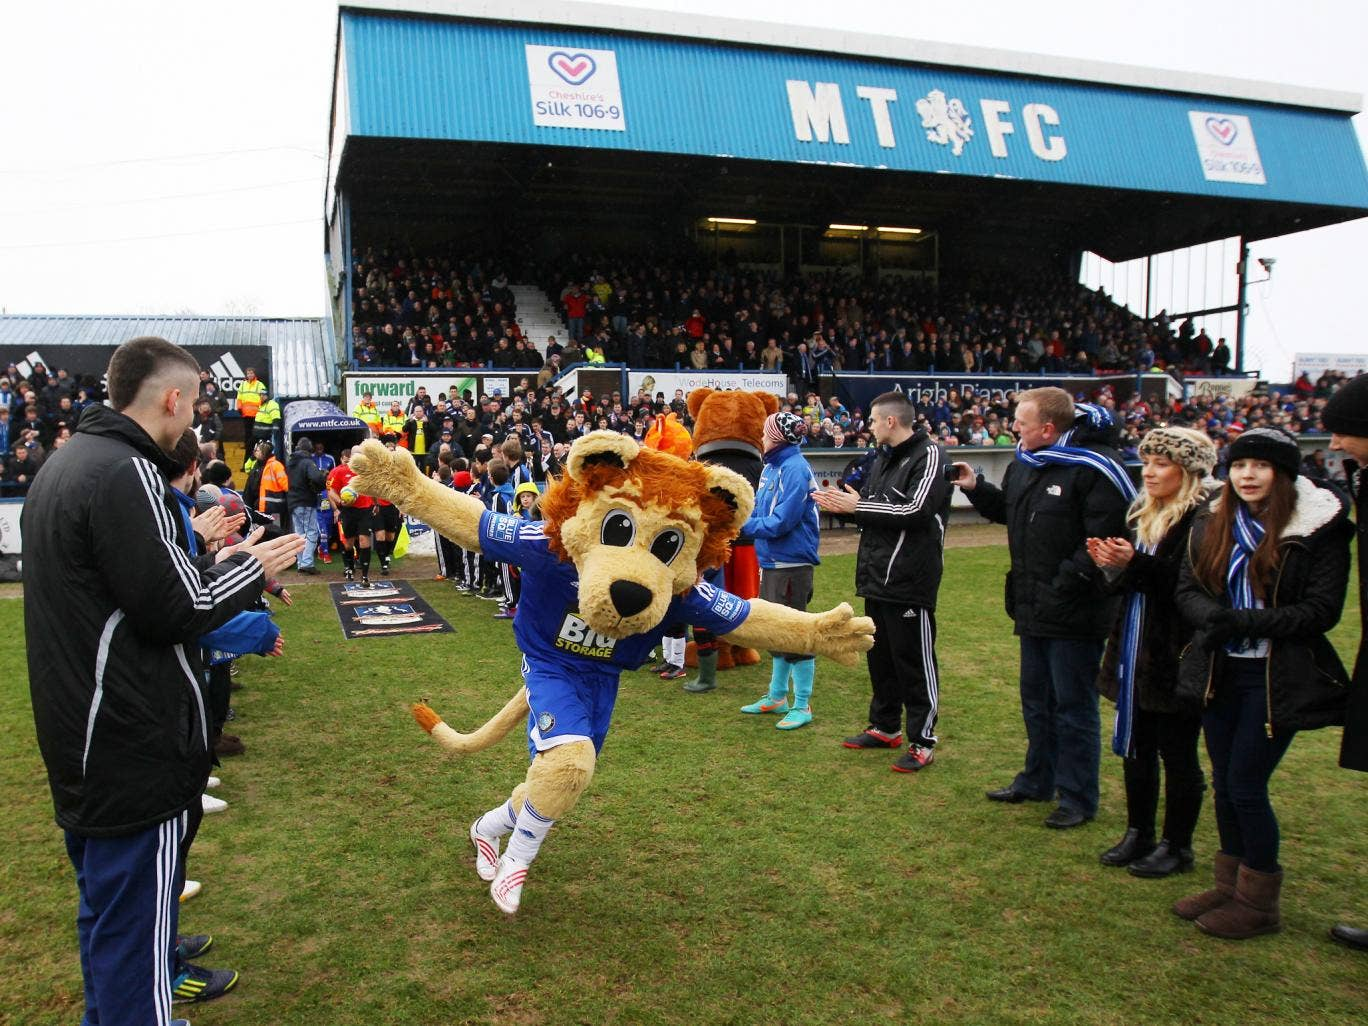 Mascot Roary the Lion leads the teams out ahead at Macclesfield - but the club has dropped plans for a fan to pay for a game